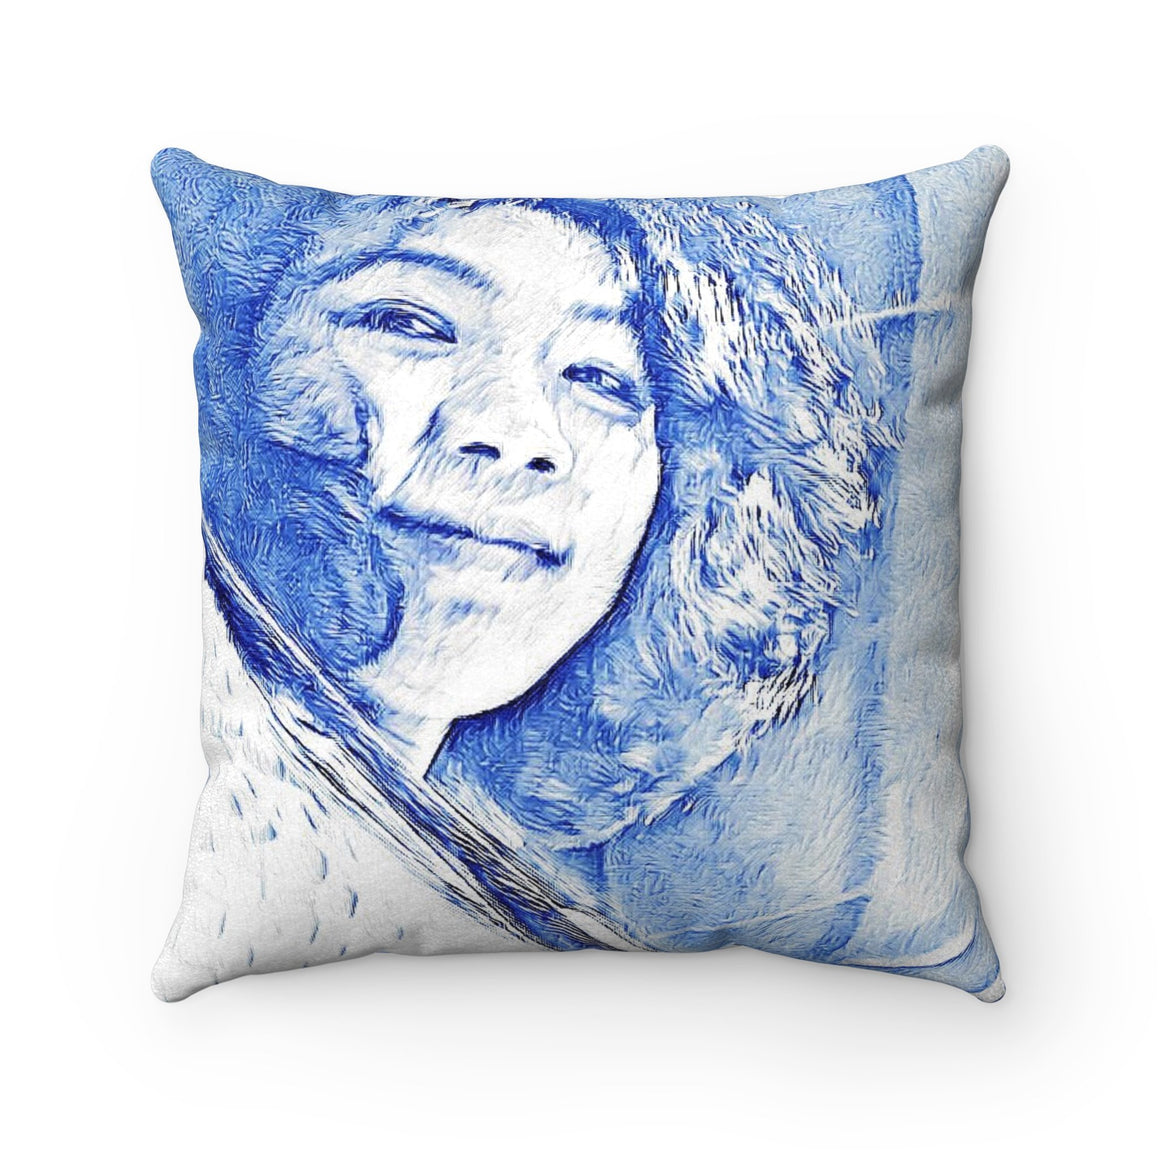 Levi Thang Vintage Face Design R Faux Suede Square Pillow Case